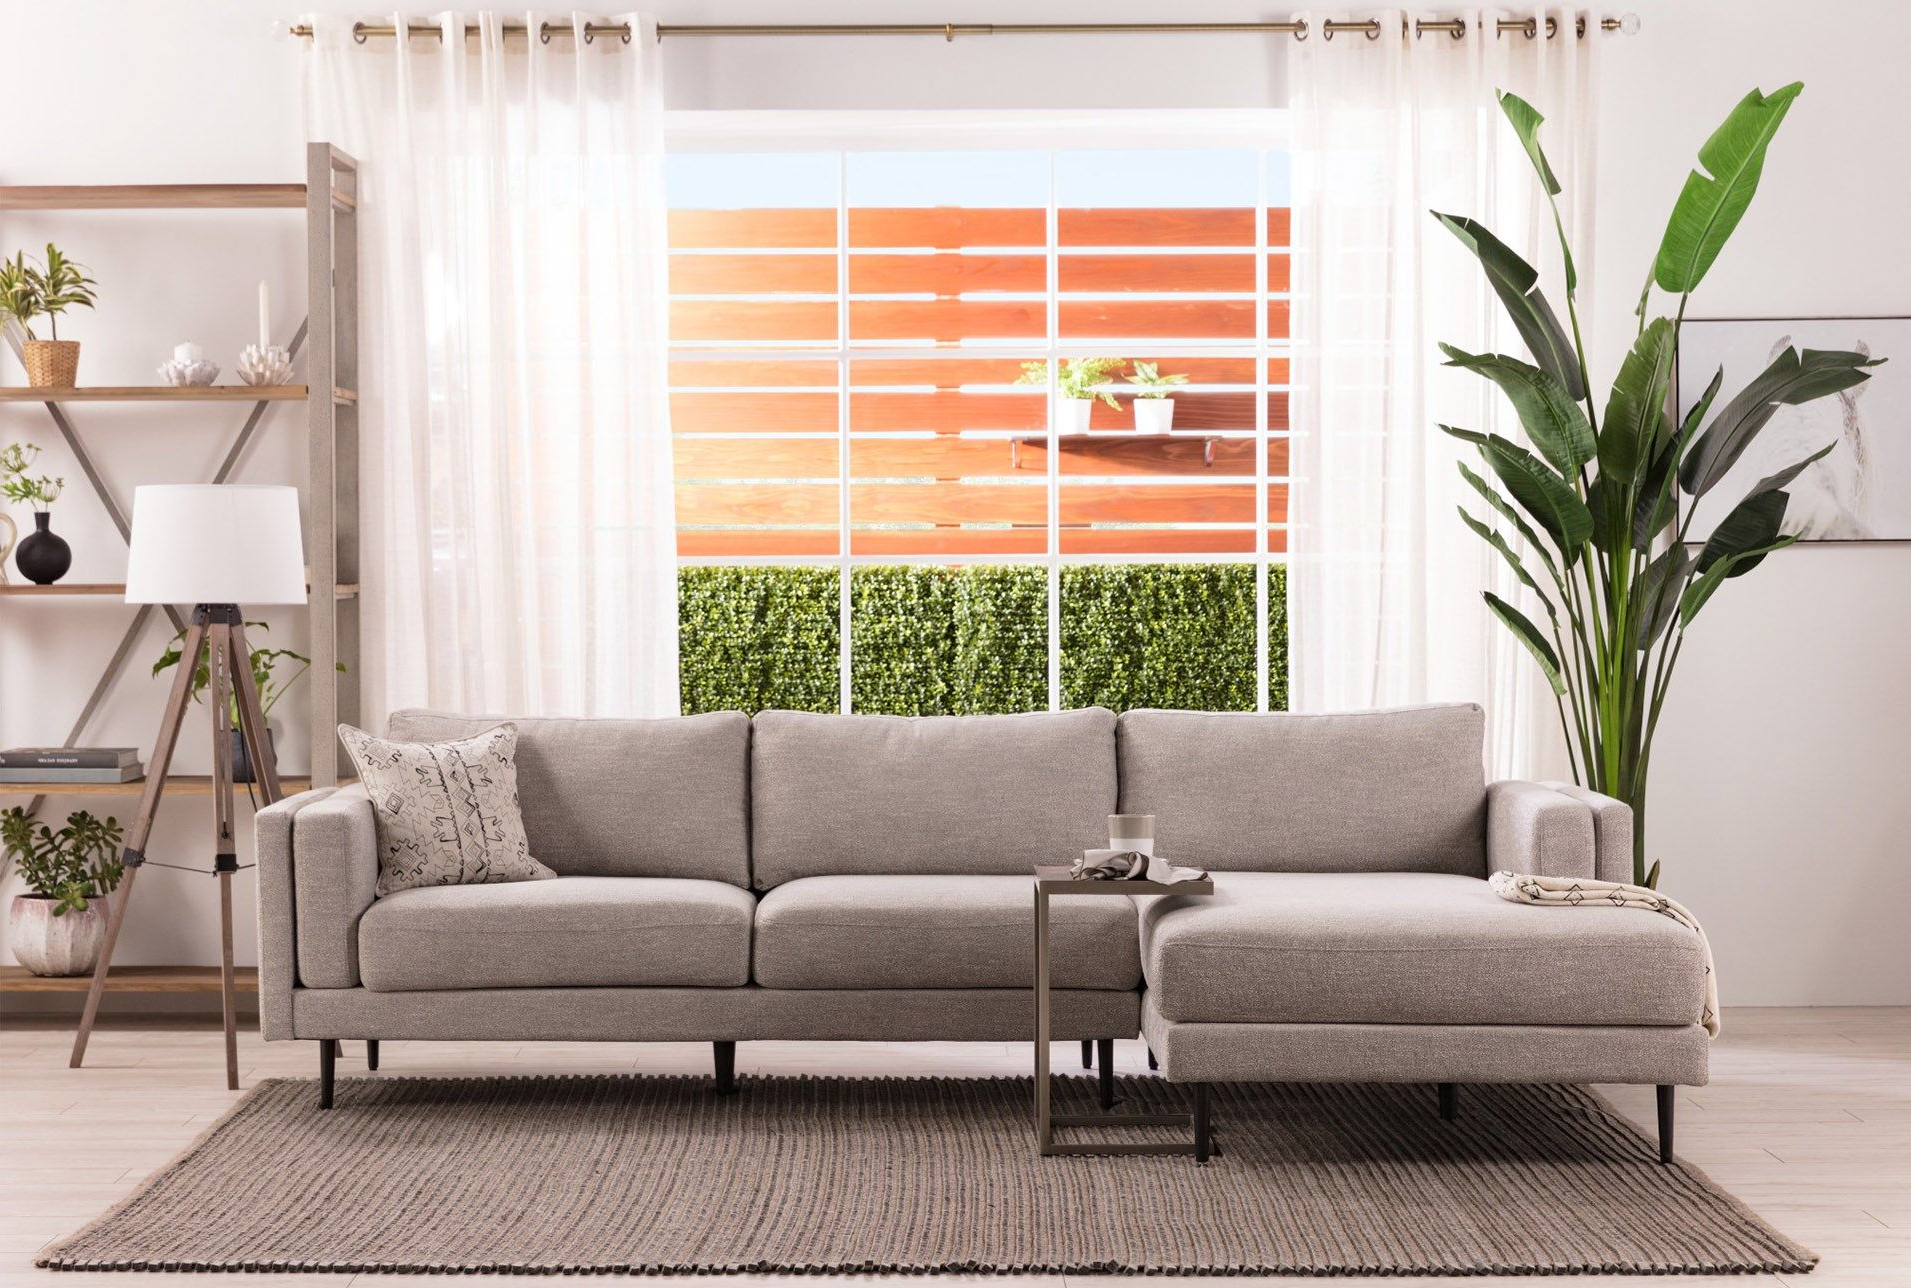 2019 Aquarius Dark Grey 2 Piece Sectionals With Laf Chaise Regarding Aquarius Light Grey 2 Piece Sectional W/laf Chaise (View 1 of 20)